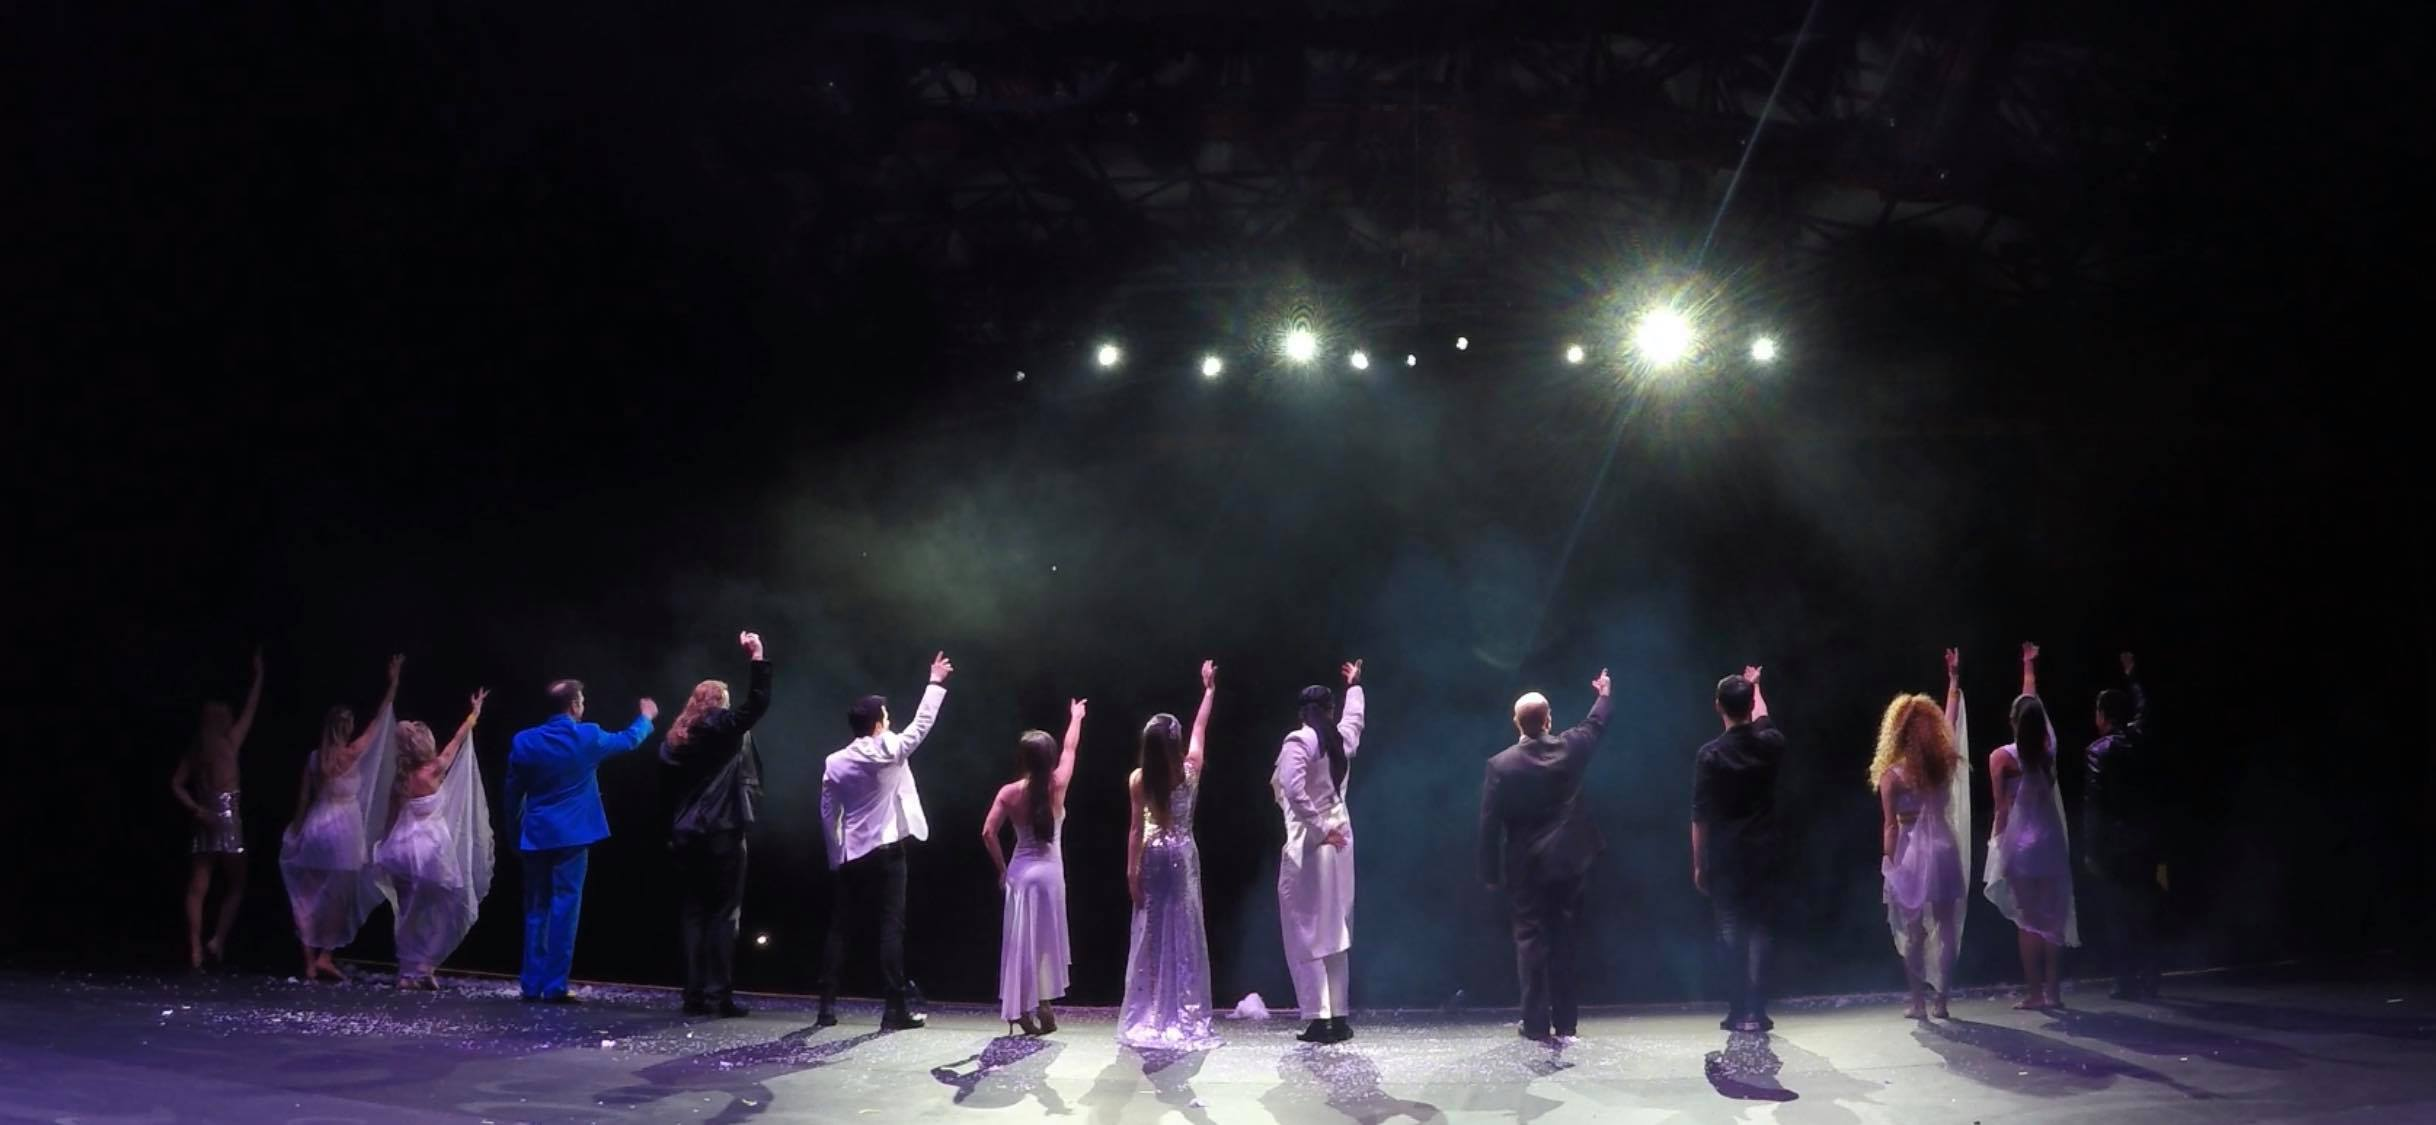 Final bows in Athens Greece!